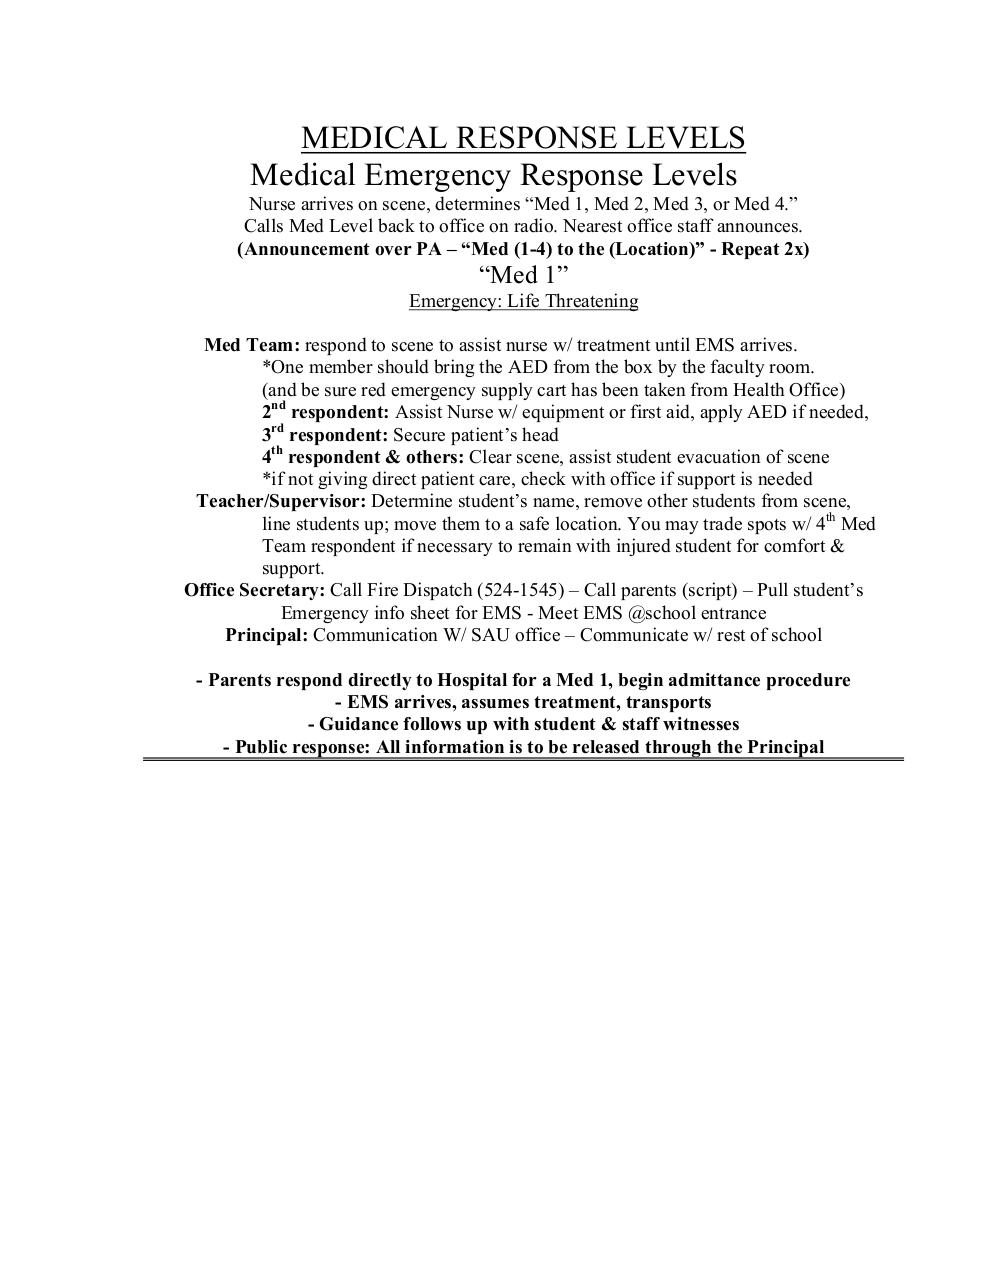 Medical levels explained and sample script .pdf - page 1/6